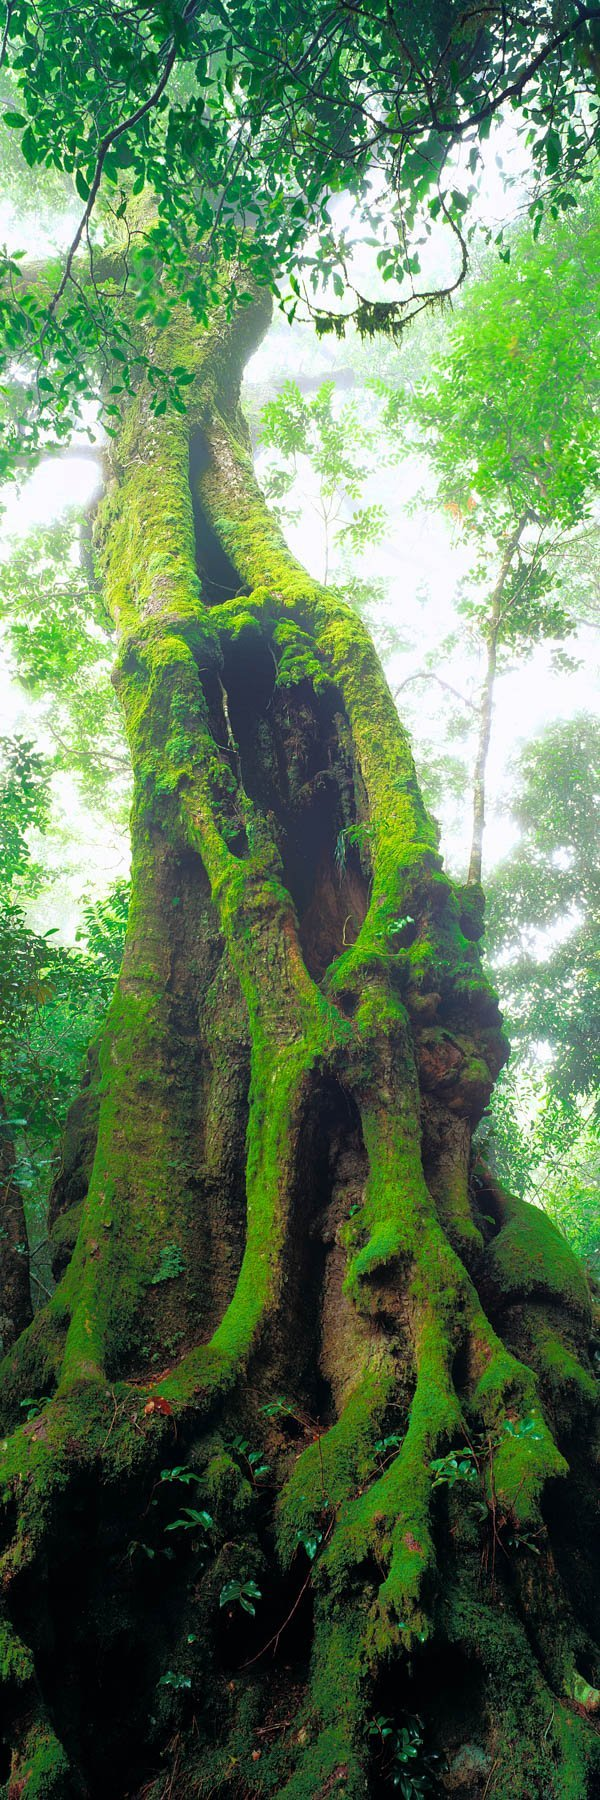 A massive, moss-covered tree in the rainforest, Qld, Australia.